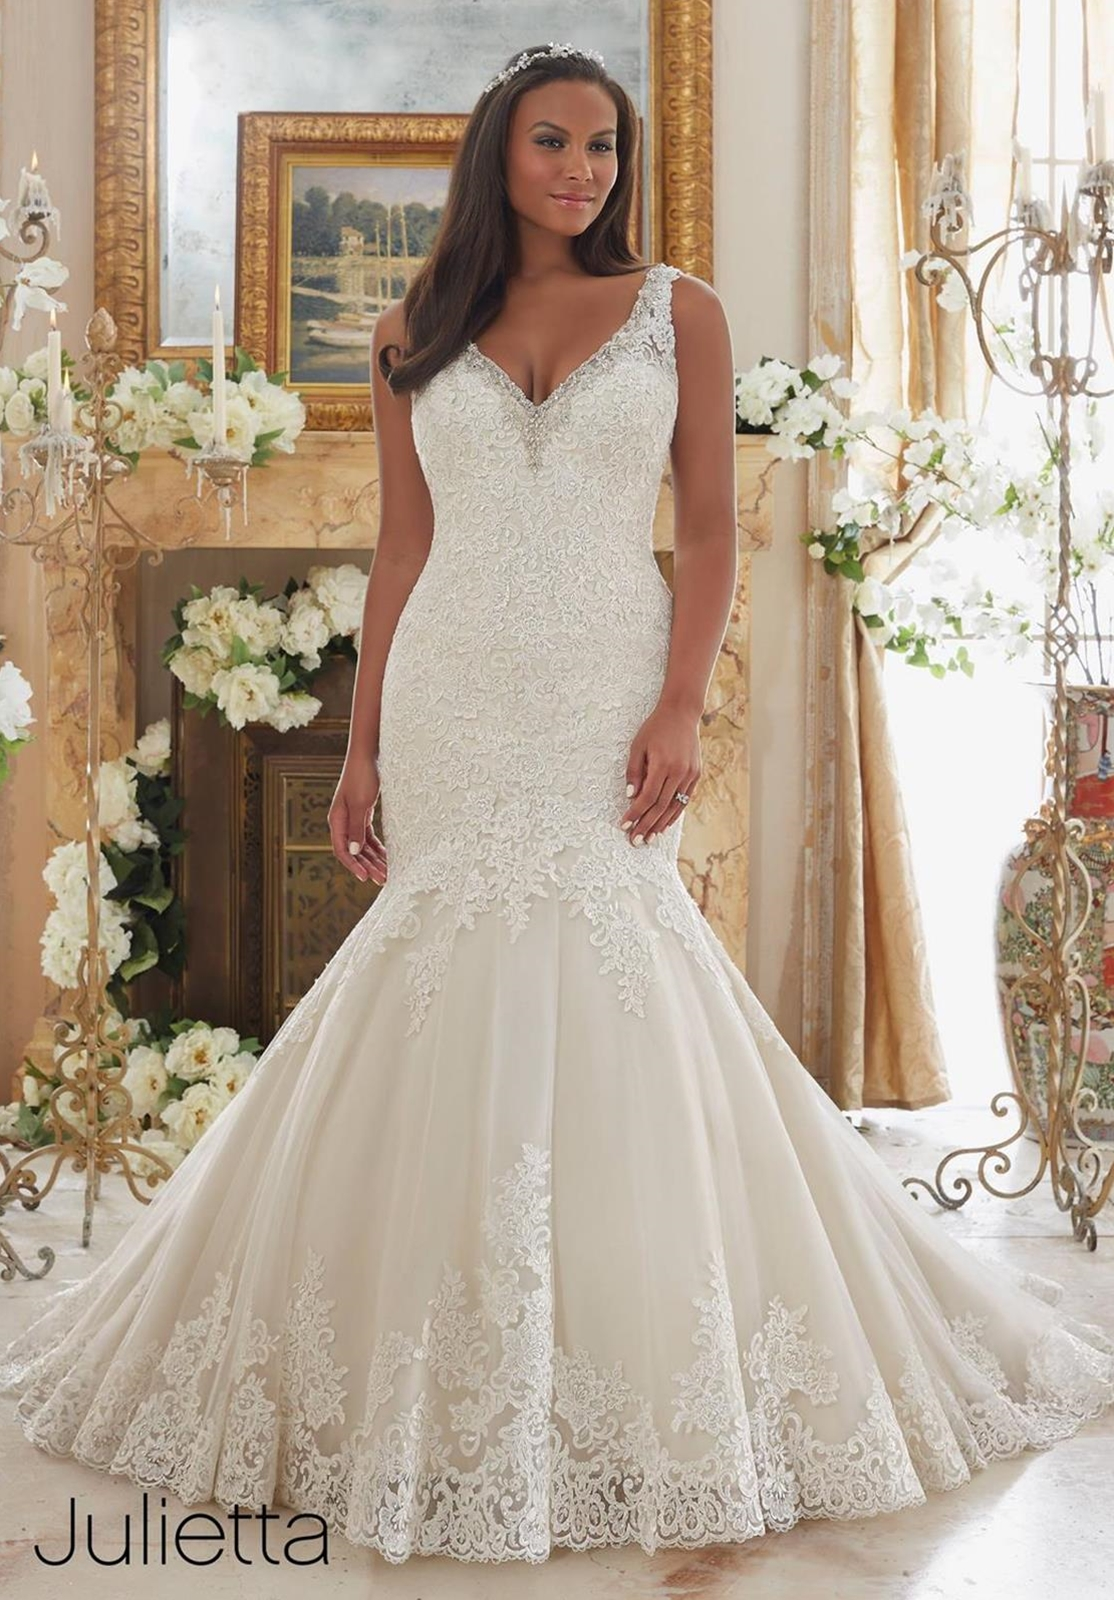 c mermaid style wedding dresses wedding dresses mermaid style Julietta